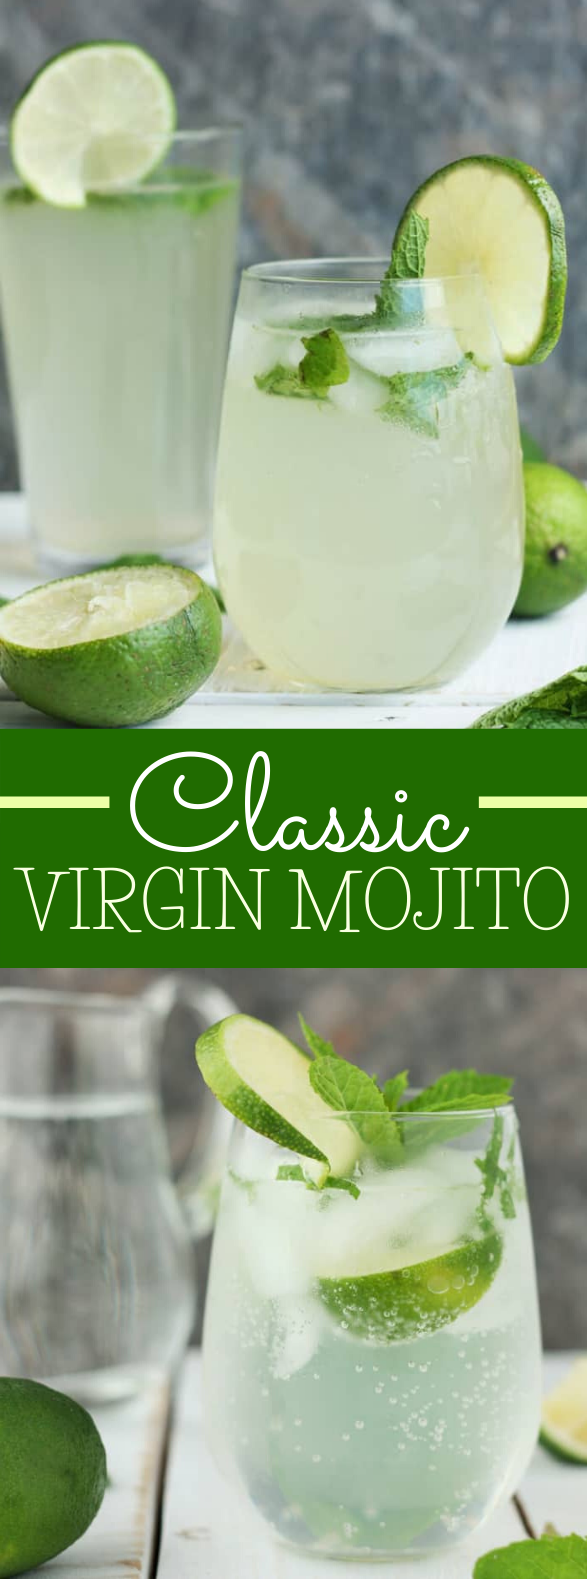 VIRGIN MOJITO RECIPE {MOJITO MOCKTAIL} #drinks #nonalcoholic